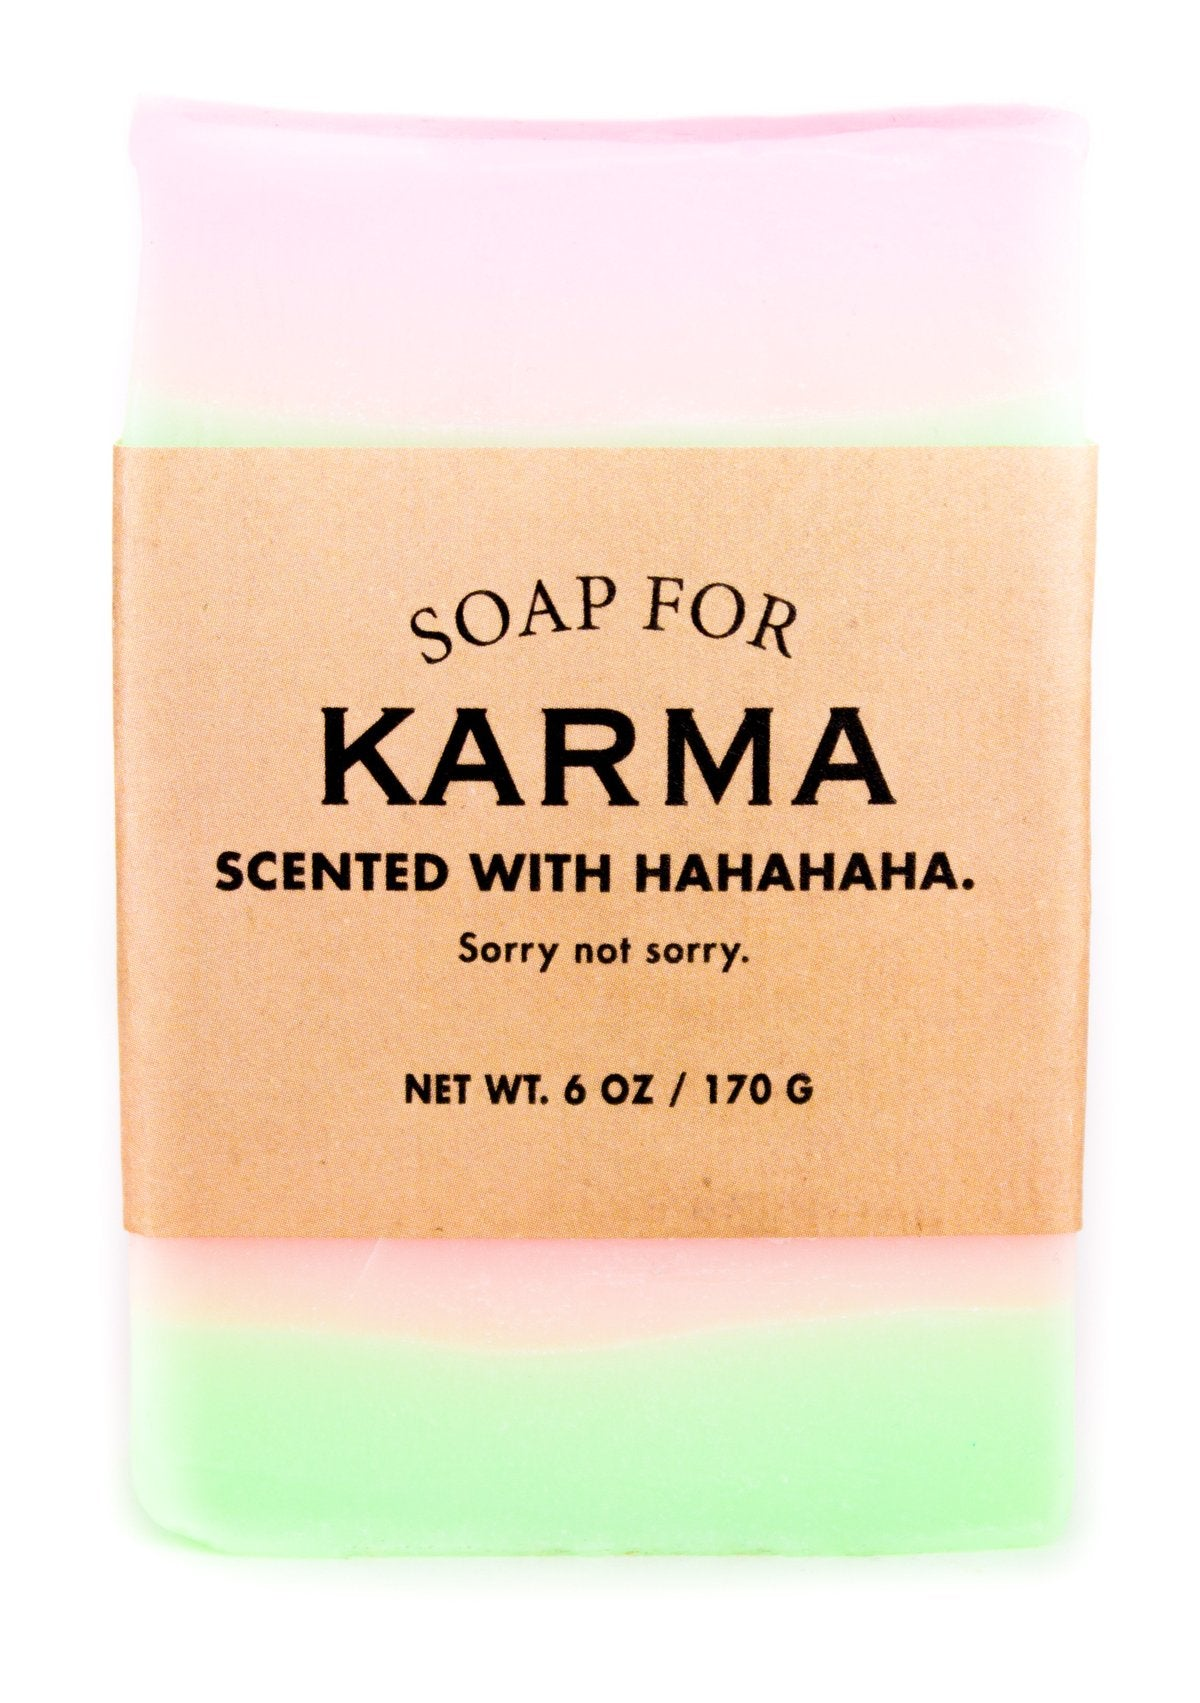 Soap for Karma - Heart of the Home PA